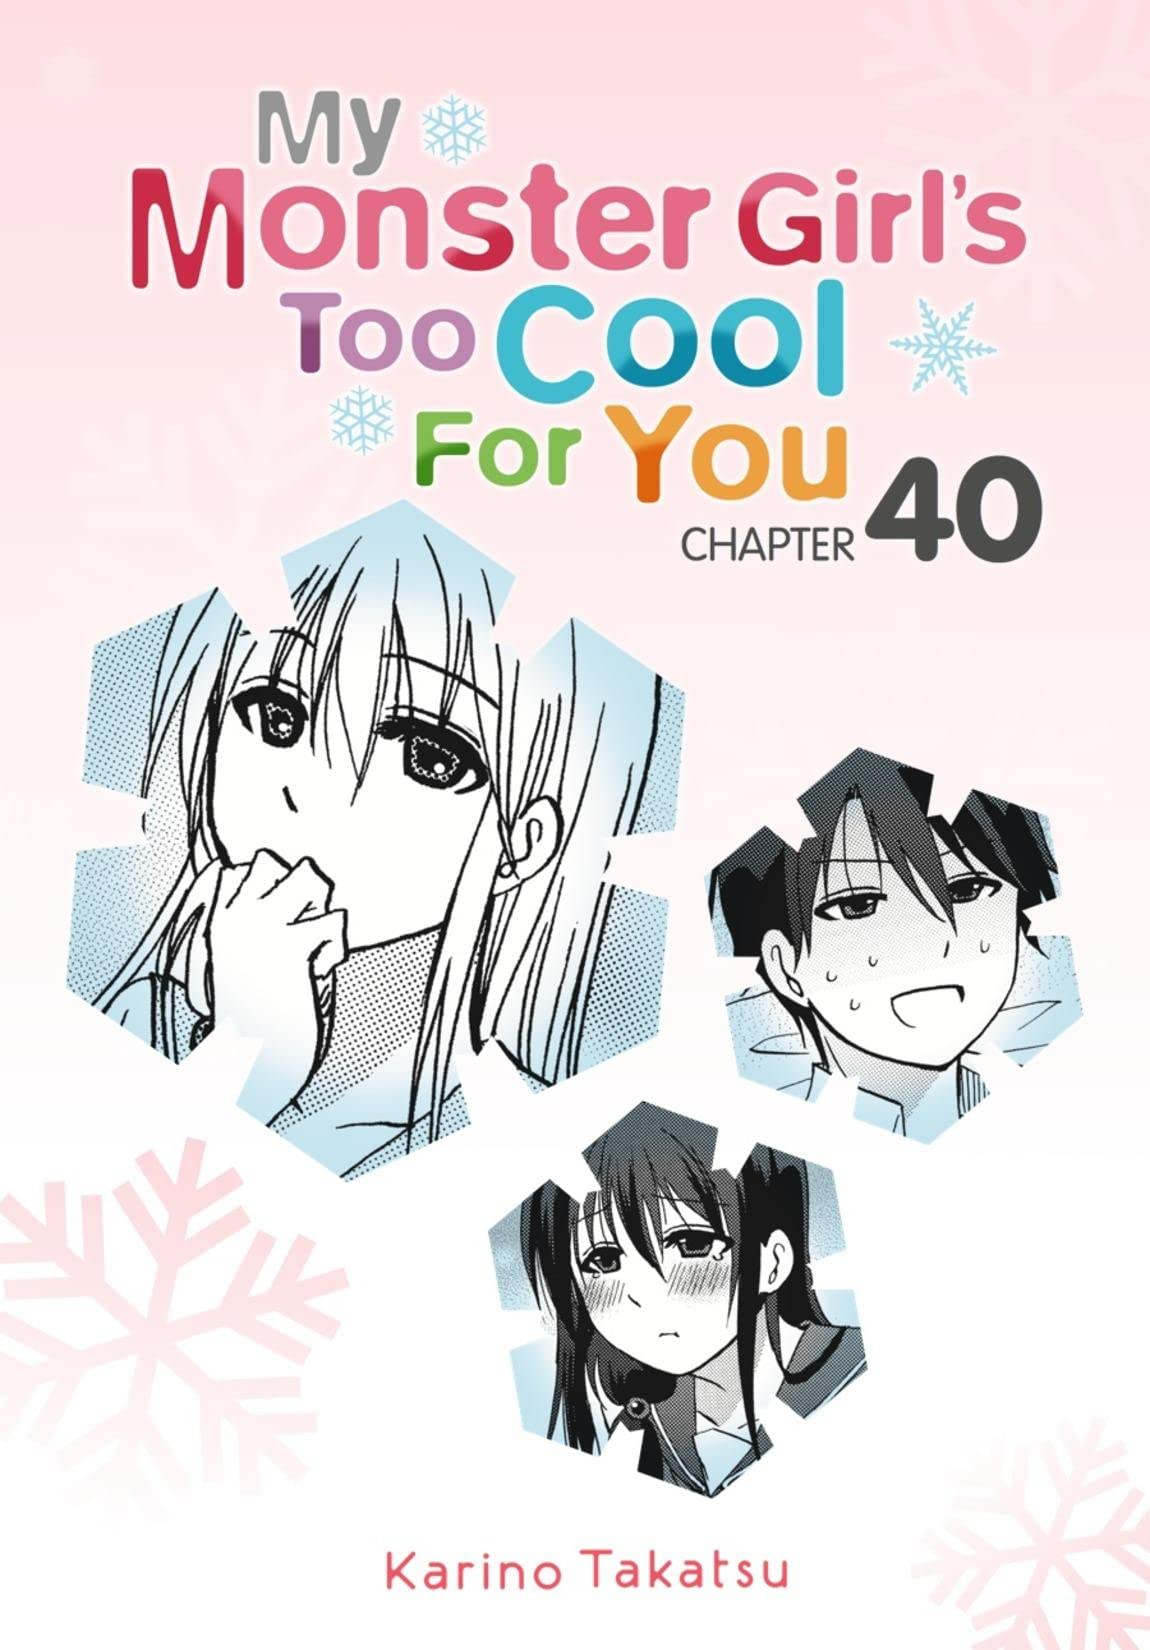 My Monster Girl's Too Cool for You #40